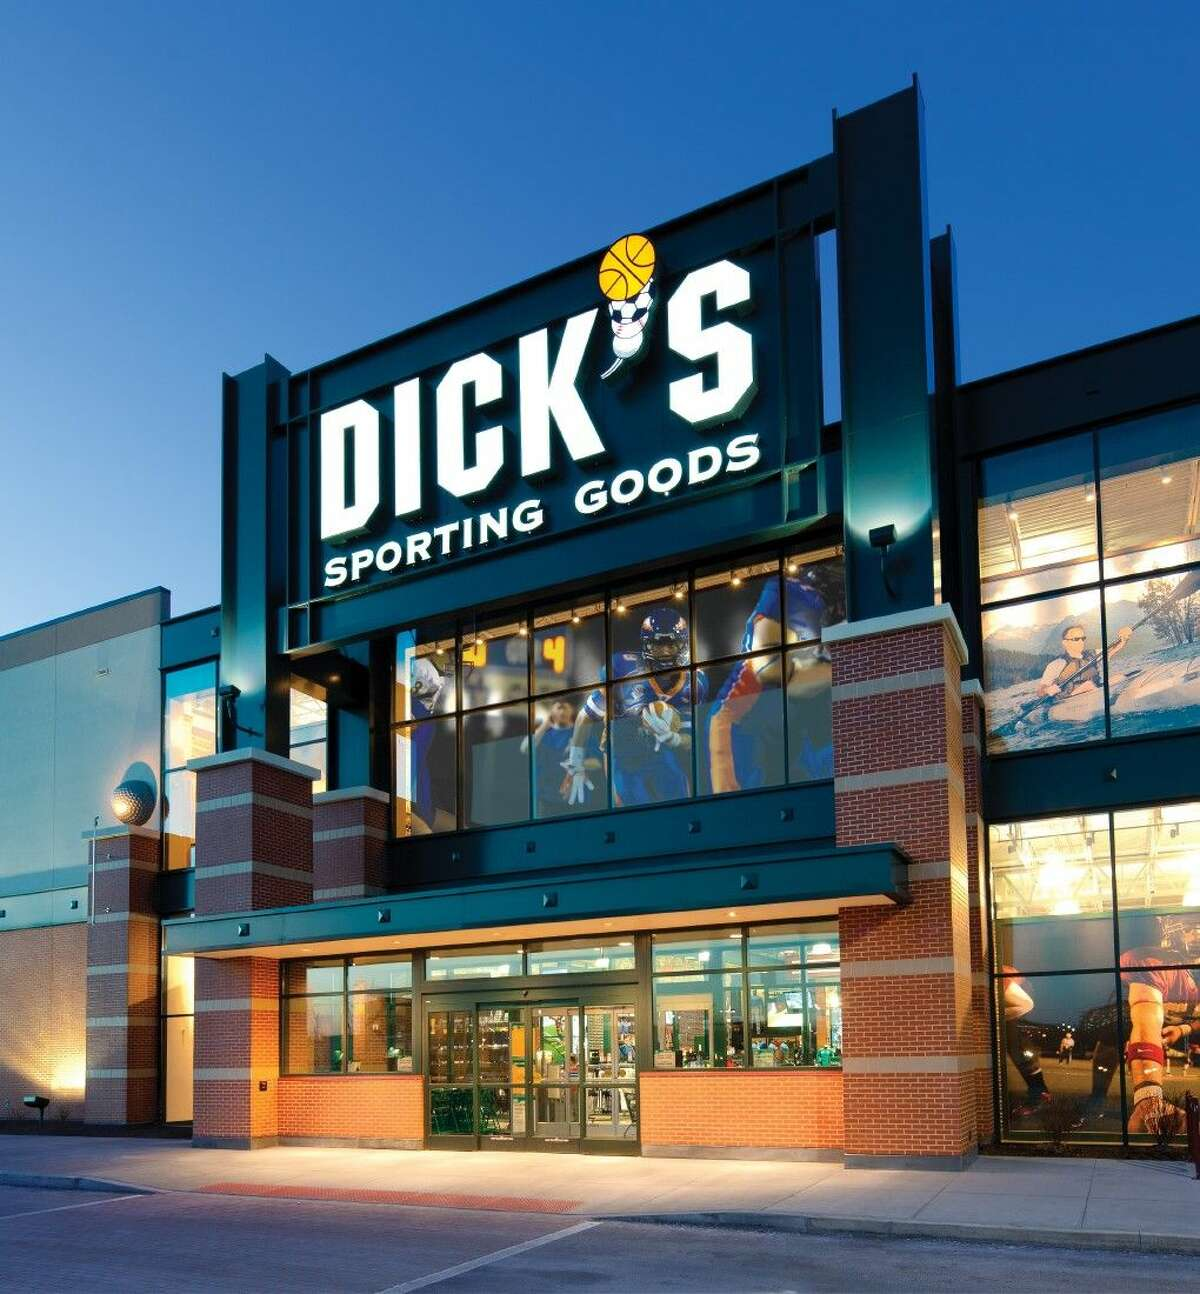 A new Dick's Sporting Goods store is planned at Baybrook Mall.